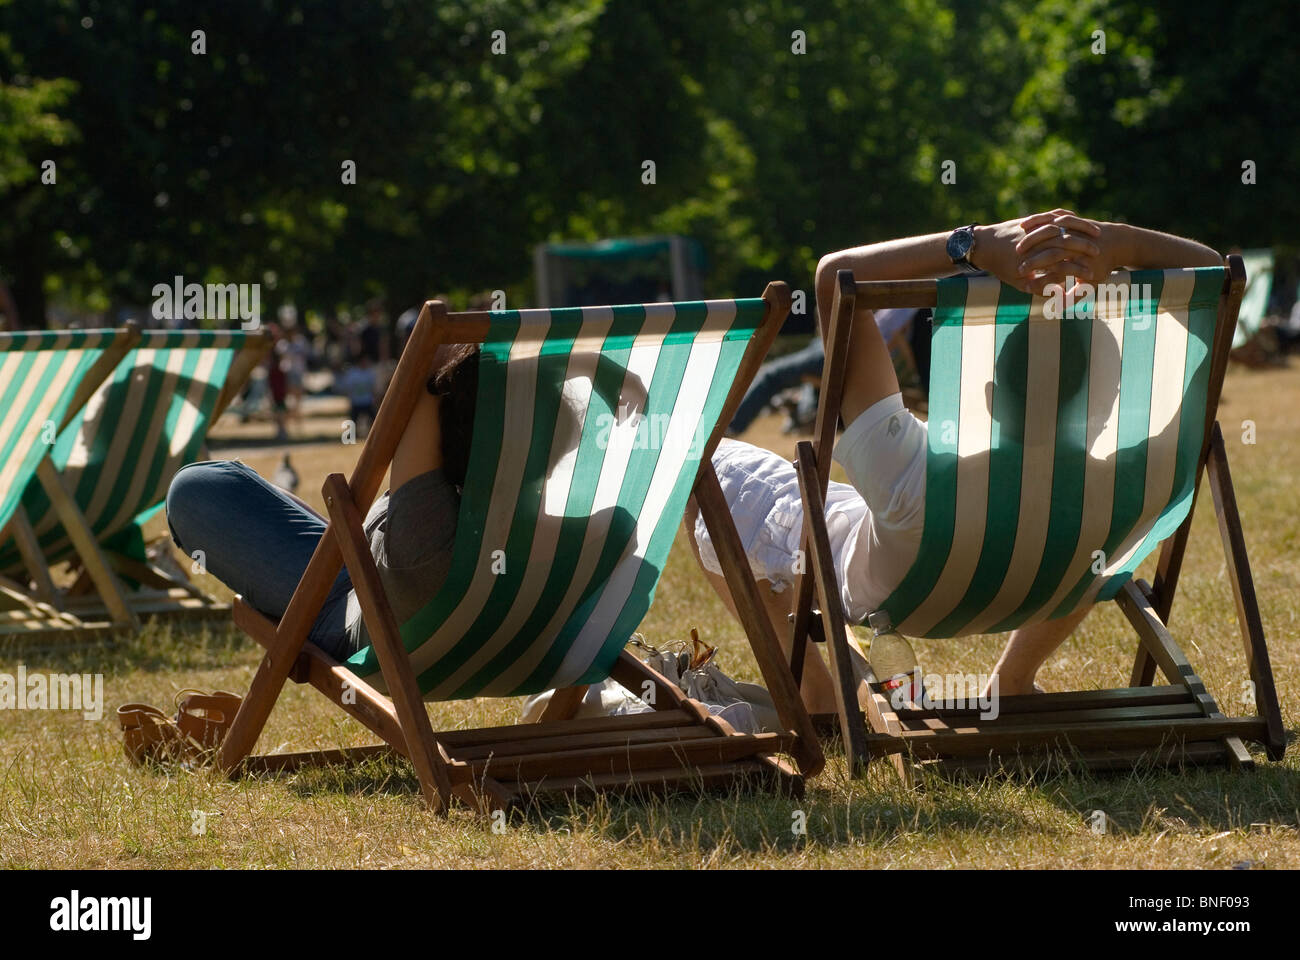 Deck chairs couple enjoy the summer sunshine during a mini heat wave hot weather Hyde Park London Uk HOMER SYKES - Stock Image